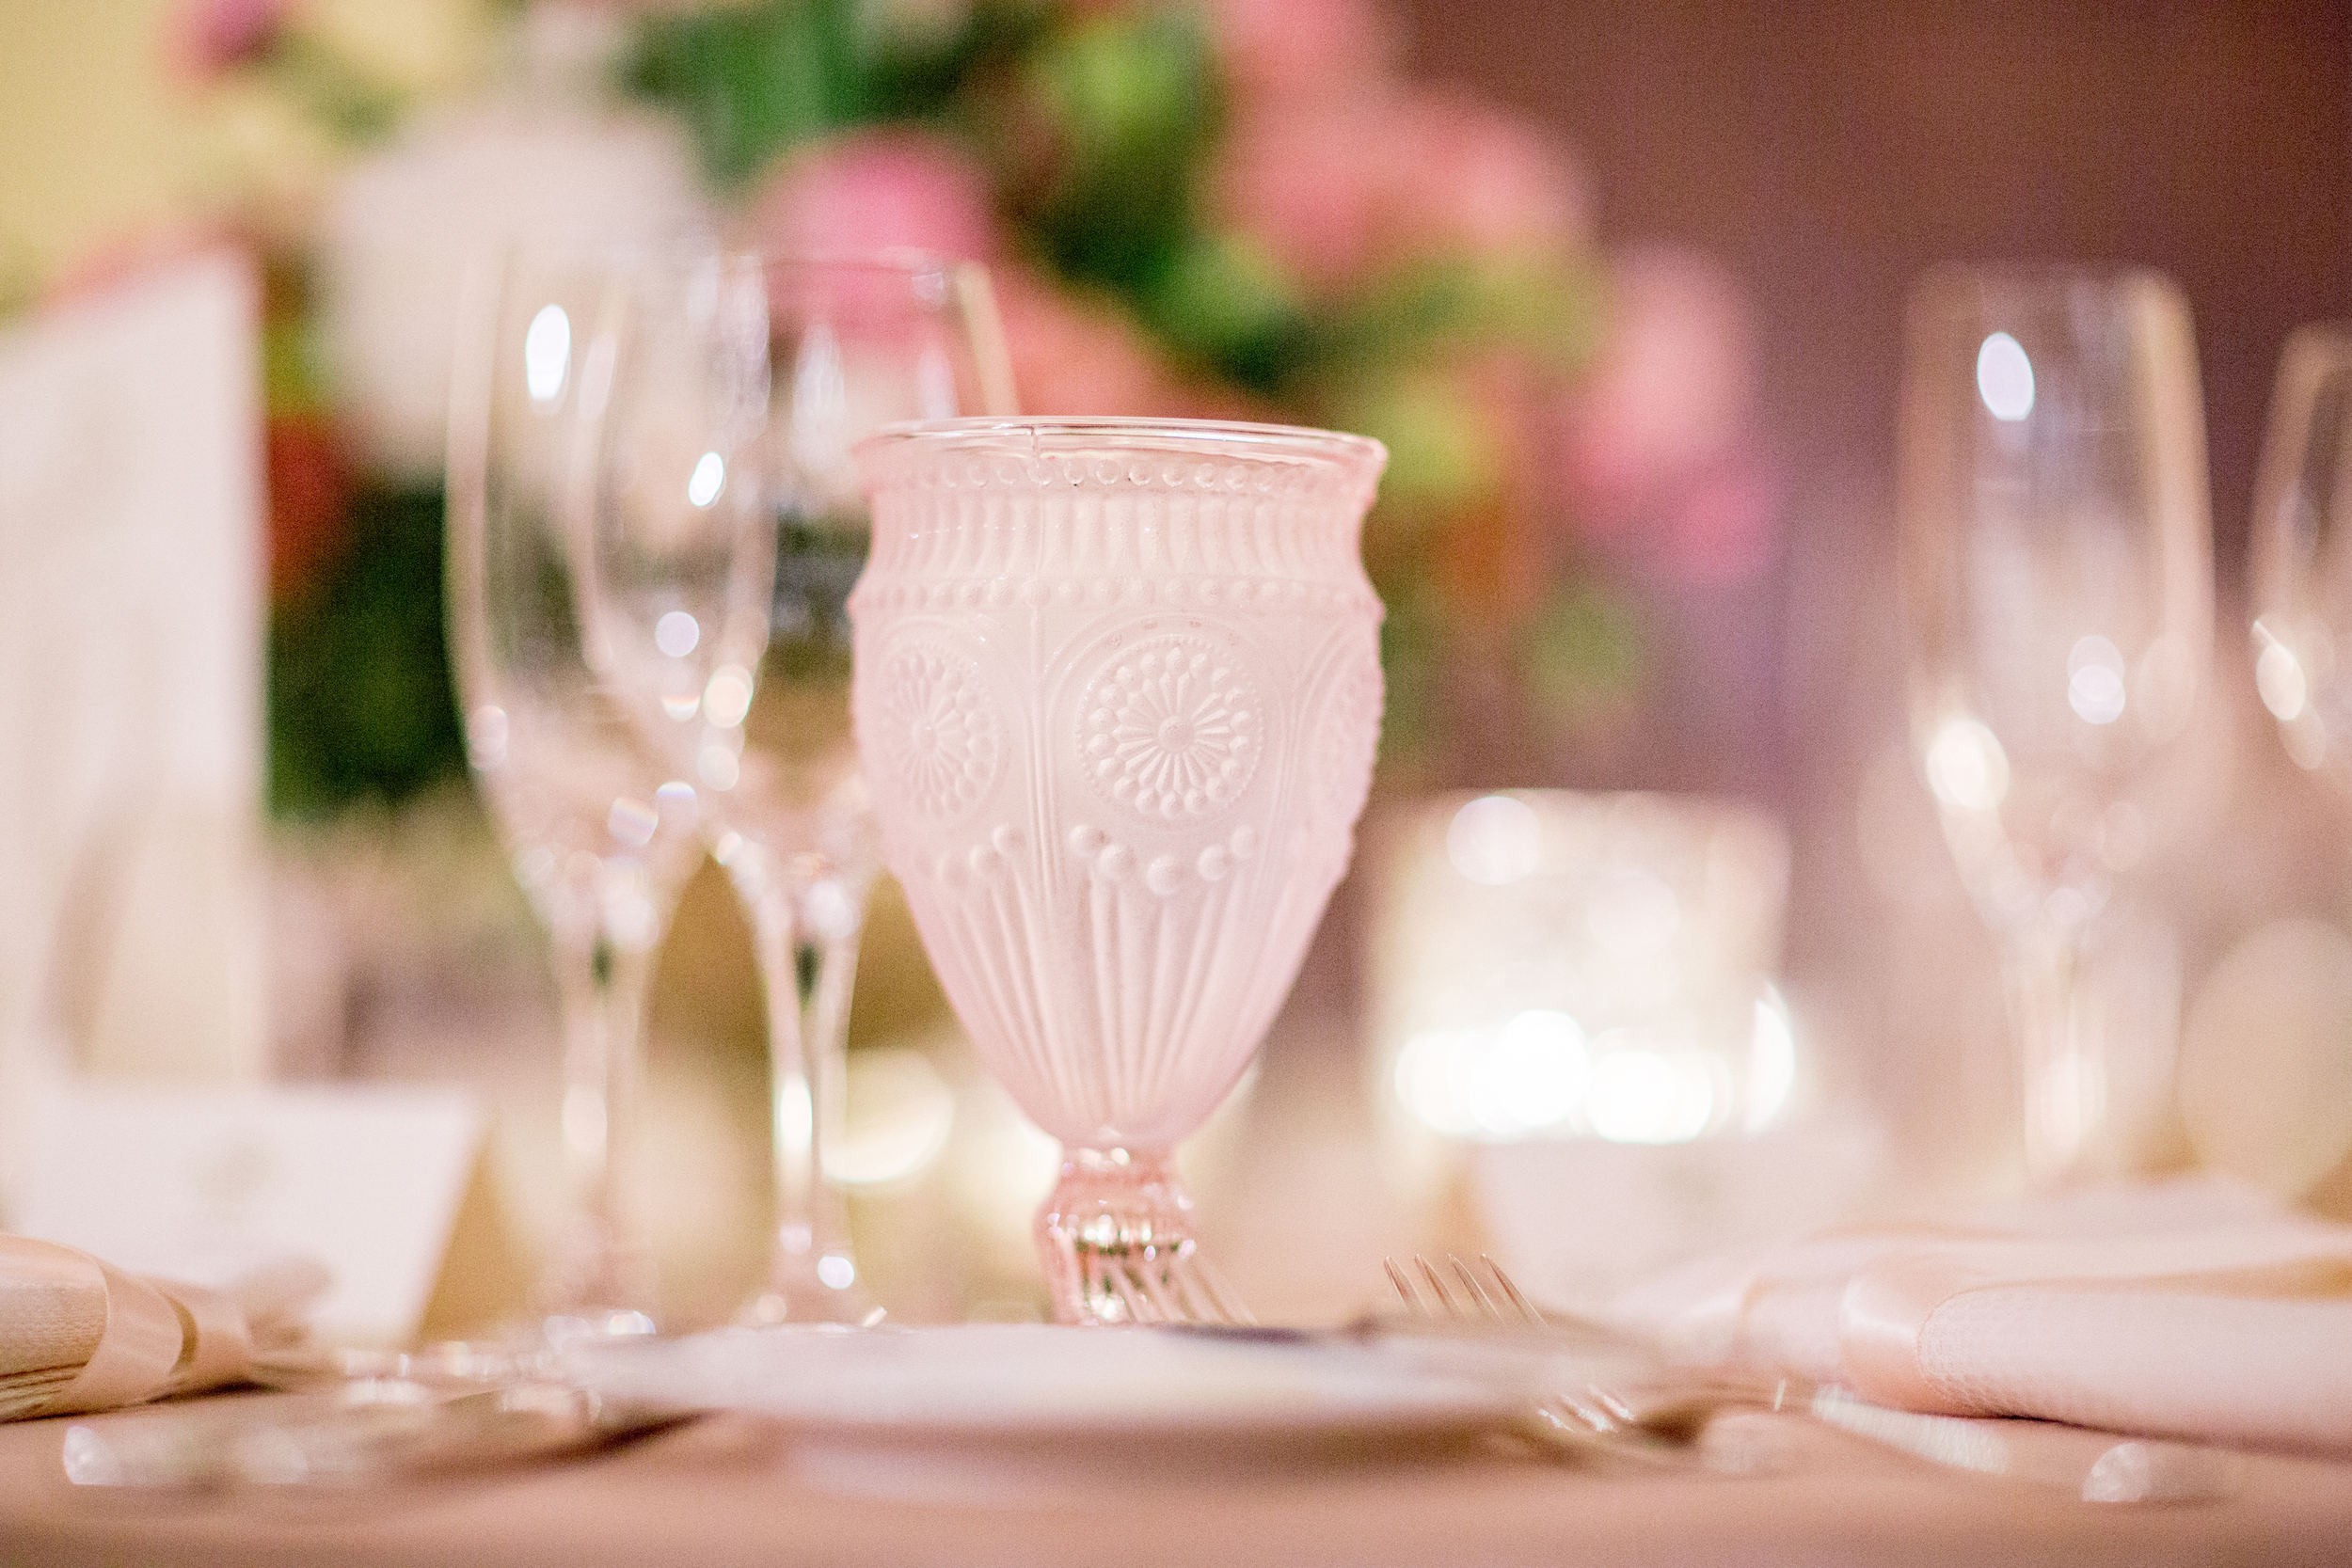 This pretty little pink vintage glass was the perfect touch to this blush wedding. Adding a special water glass is a great way to elevate the table without breaking the budget.  Glassware:Otis & Pearl Vintage Rentals - www.otisandpearl.com   Photo: Anna Costa - www.michaelandannacosta.com